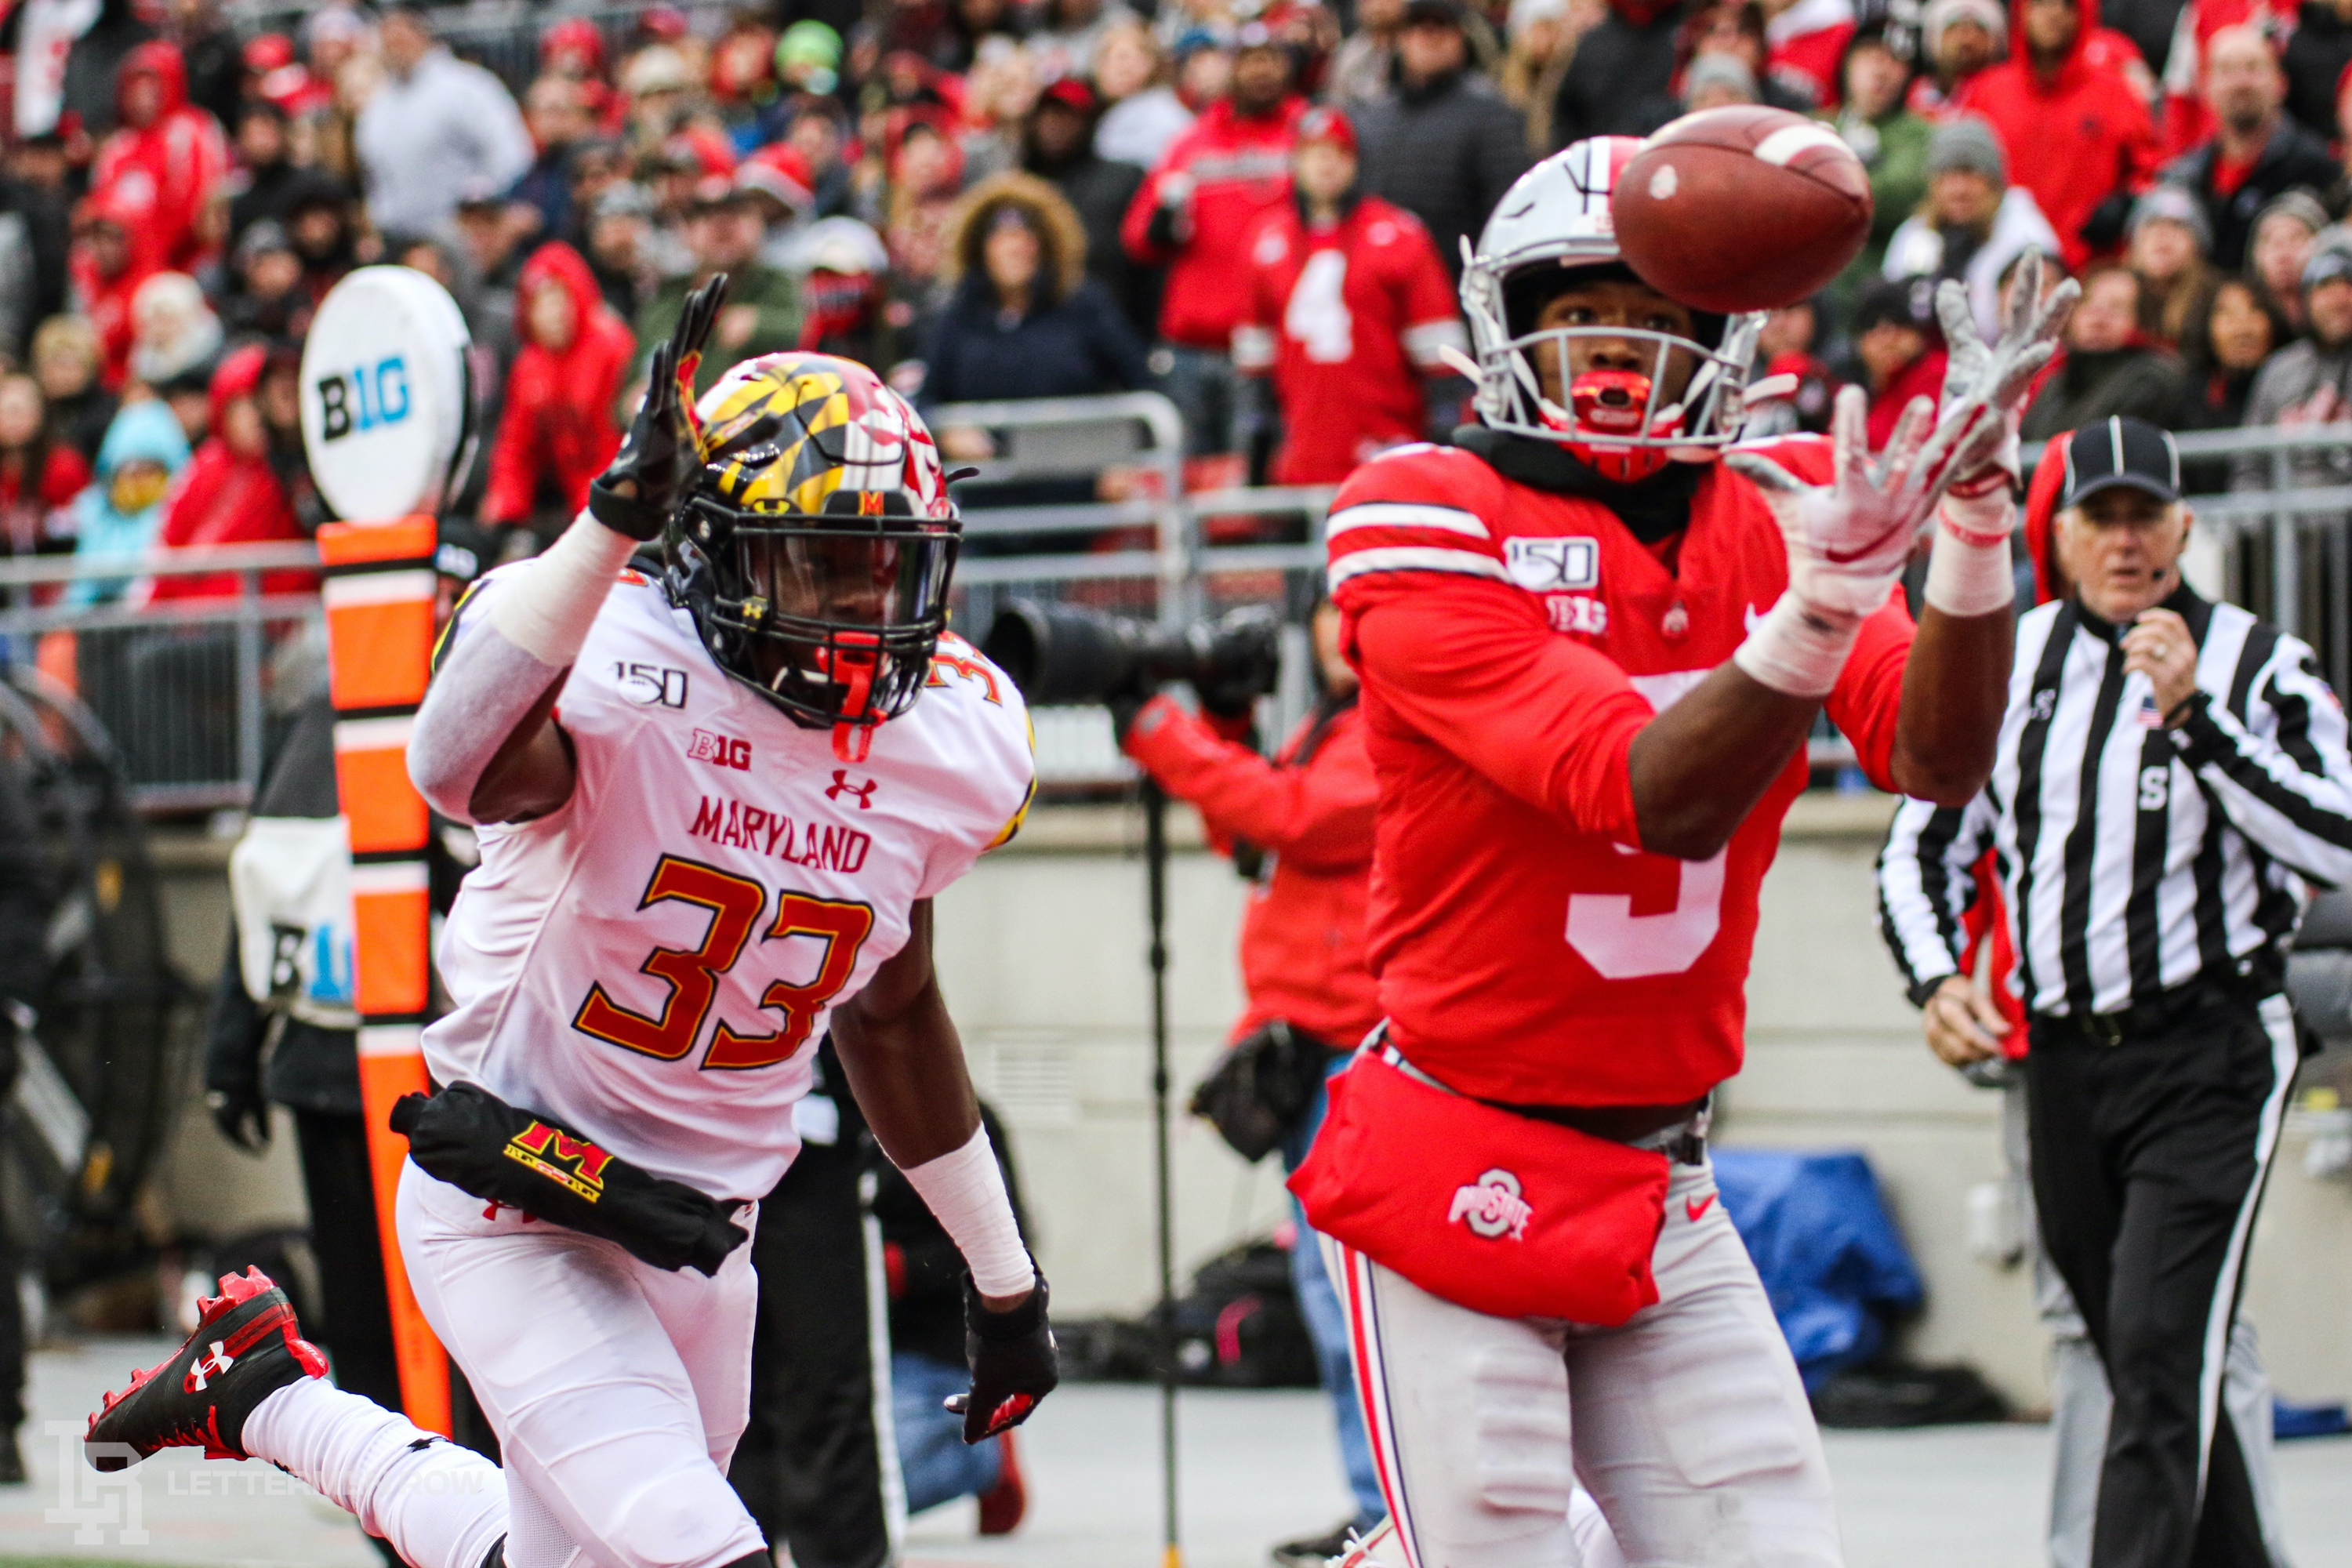 Ohio State How Prepared Are Buckeyes When Streak Of